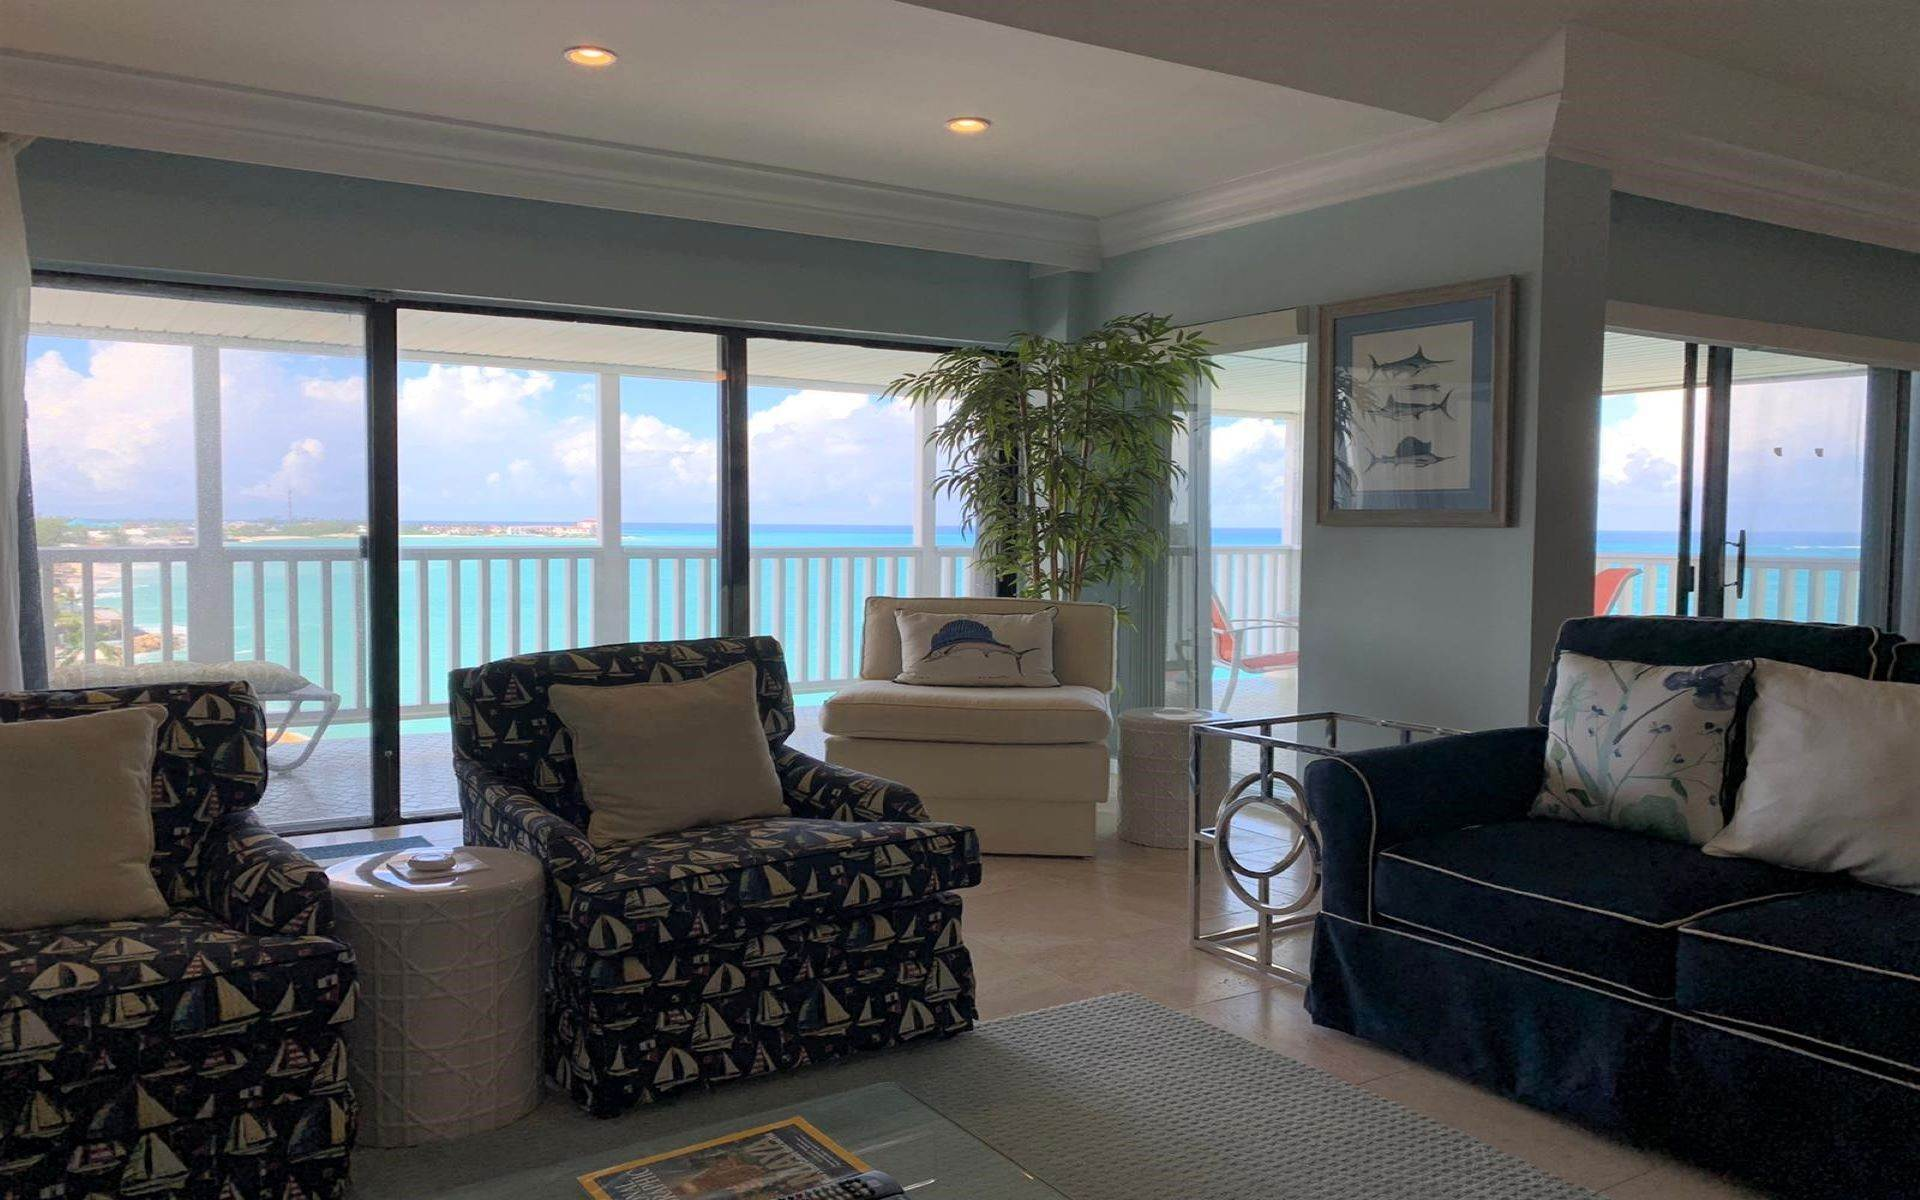 Co-op / Condo for Rent at Conchrest Condominium with Exceptional Ocean Views Conchrest, Cable Beach, Nassau And Paradise Island Bahamas